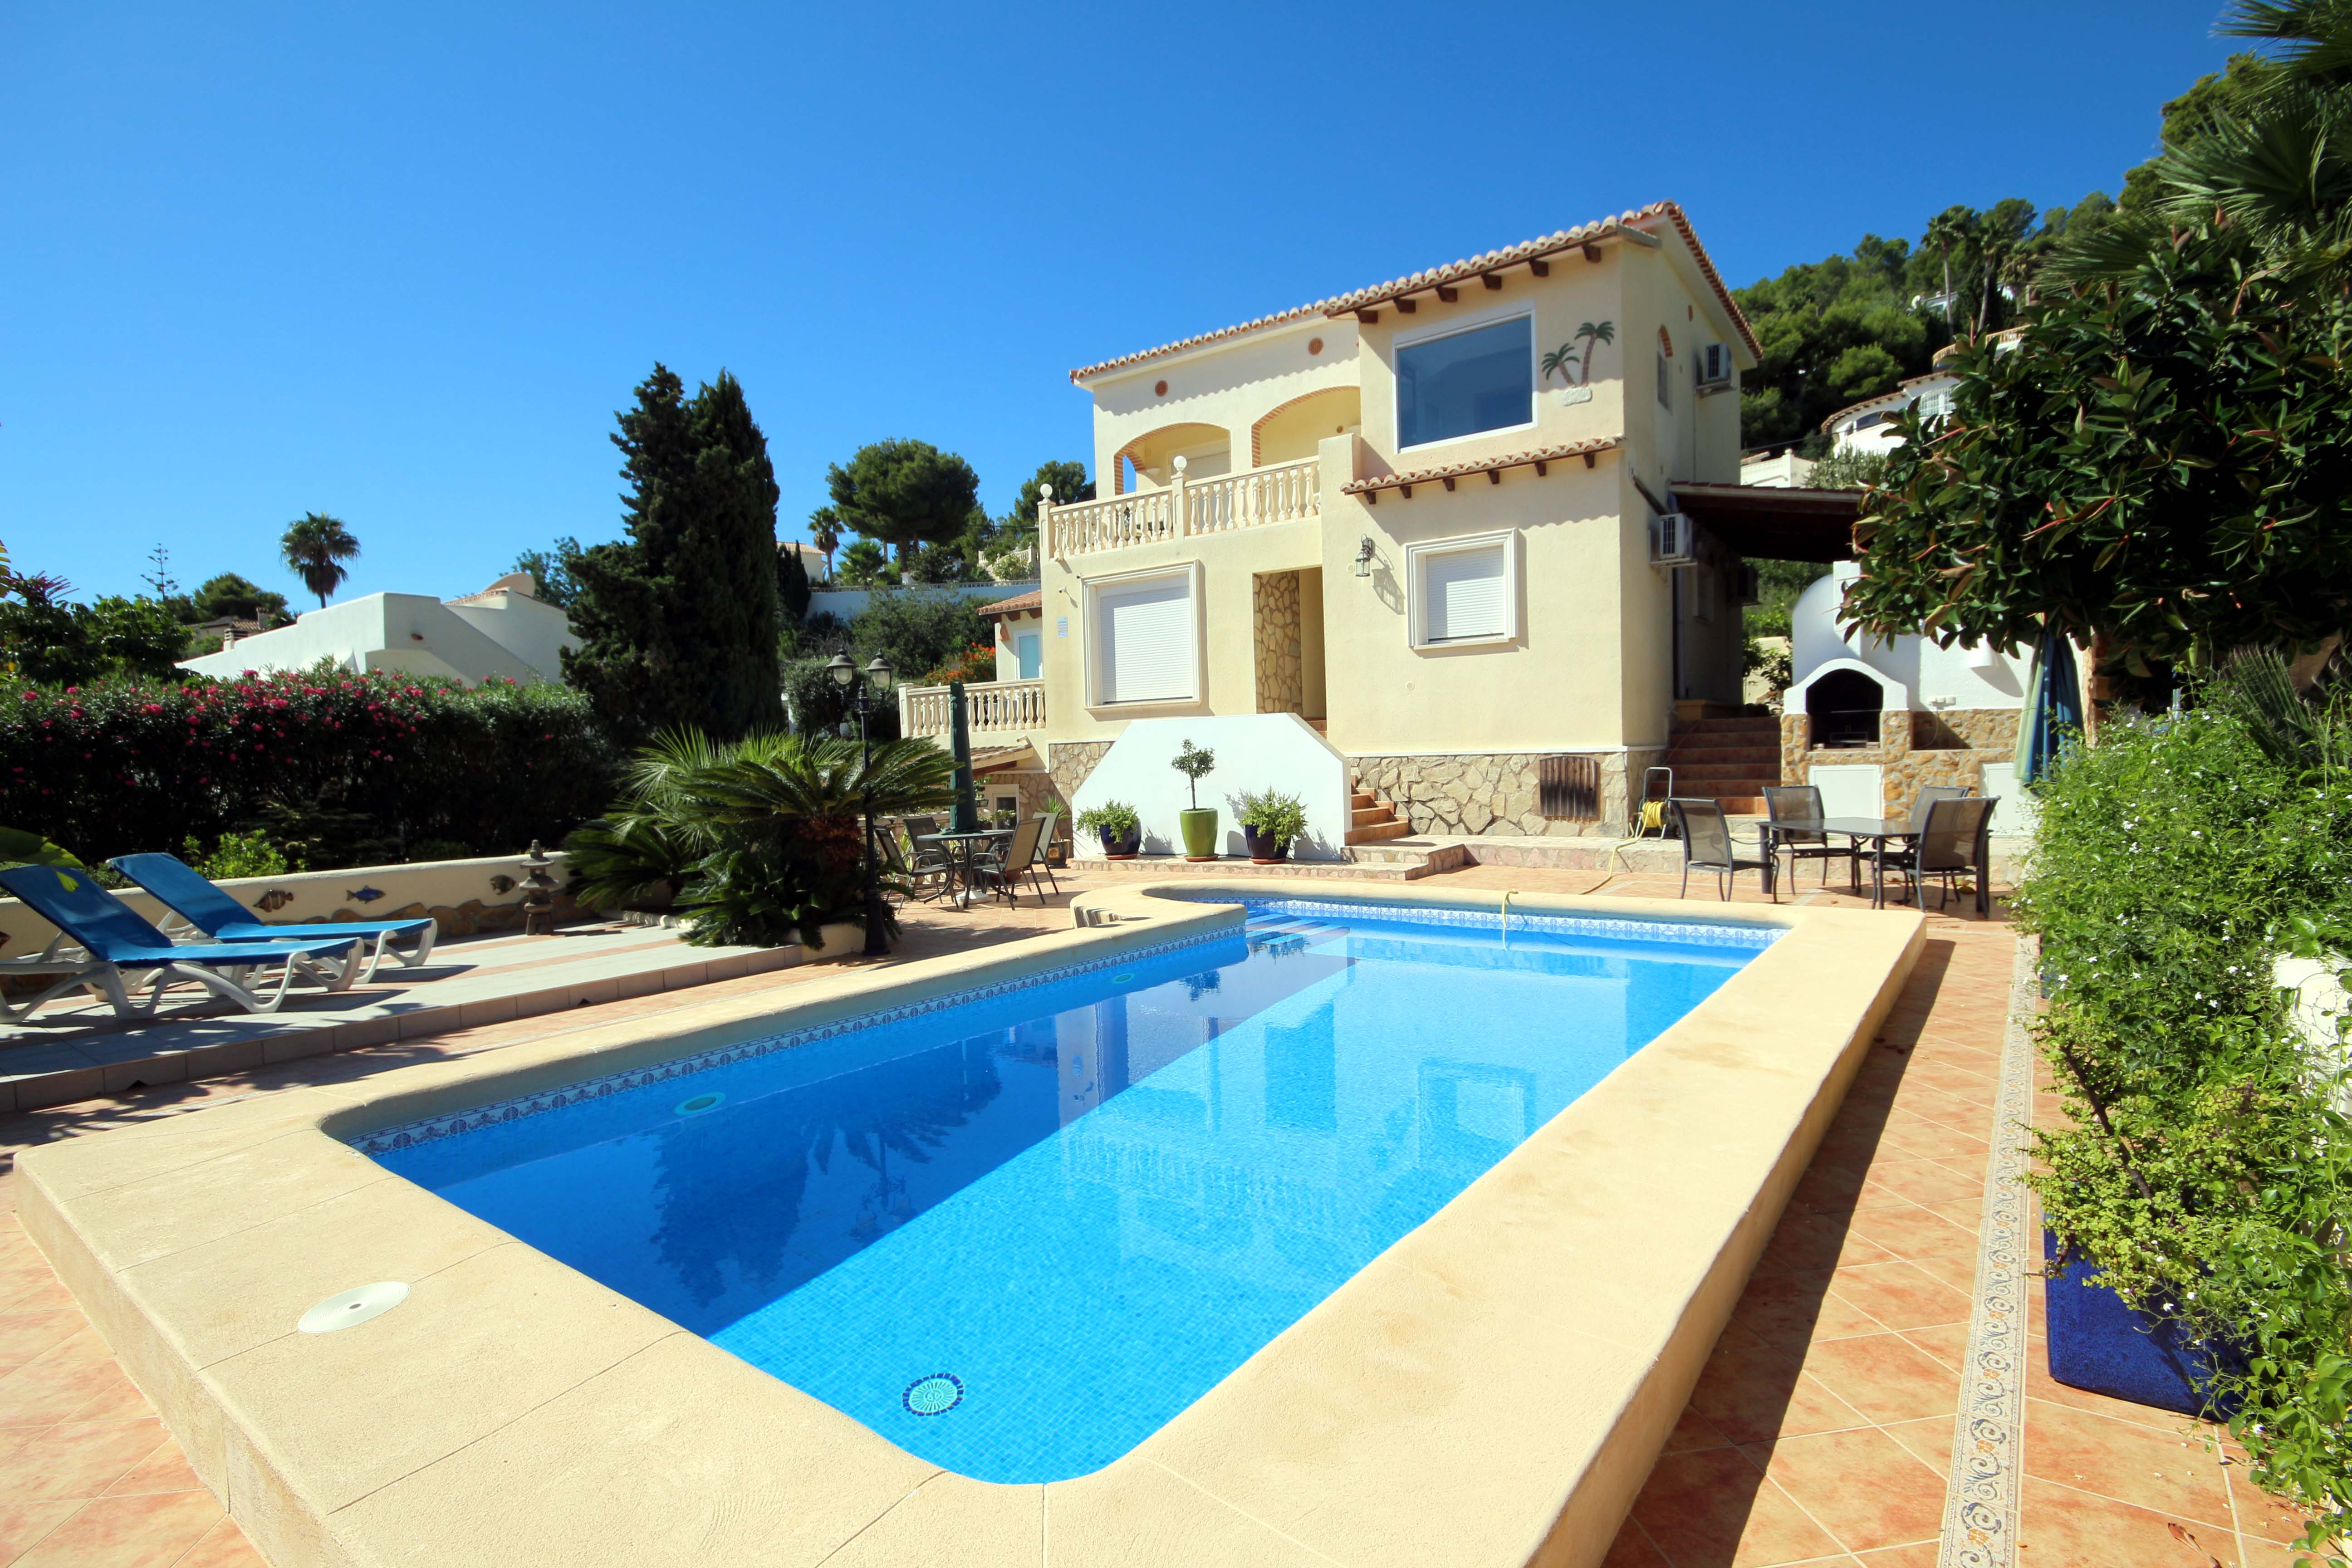 SUPERBLY MODERNISED FOUR BEDROOM, FOUR BATHROOM SEA VIEW VILLA IN MORAIRA